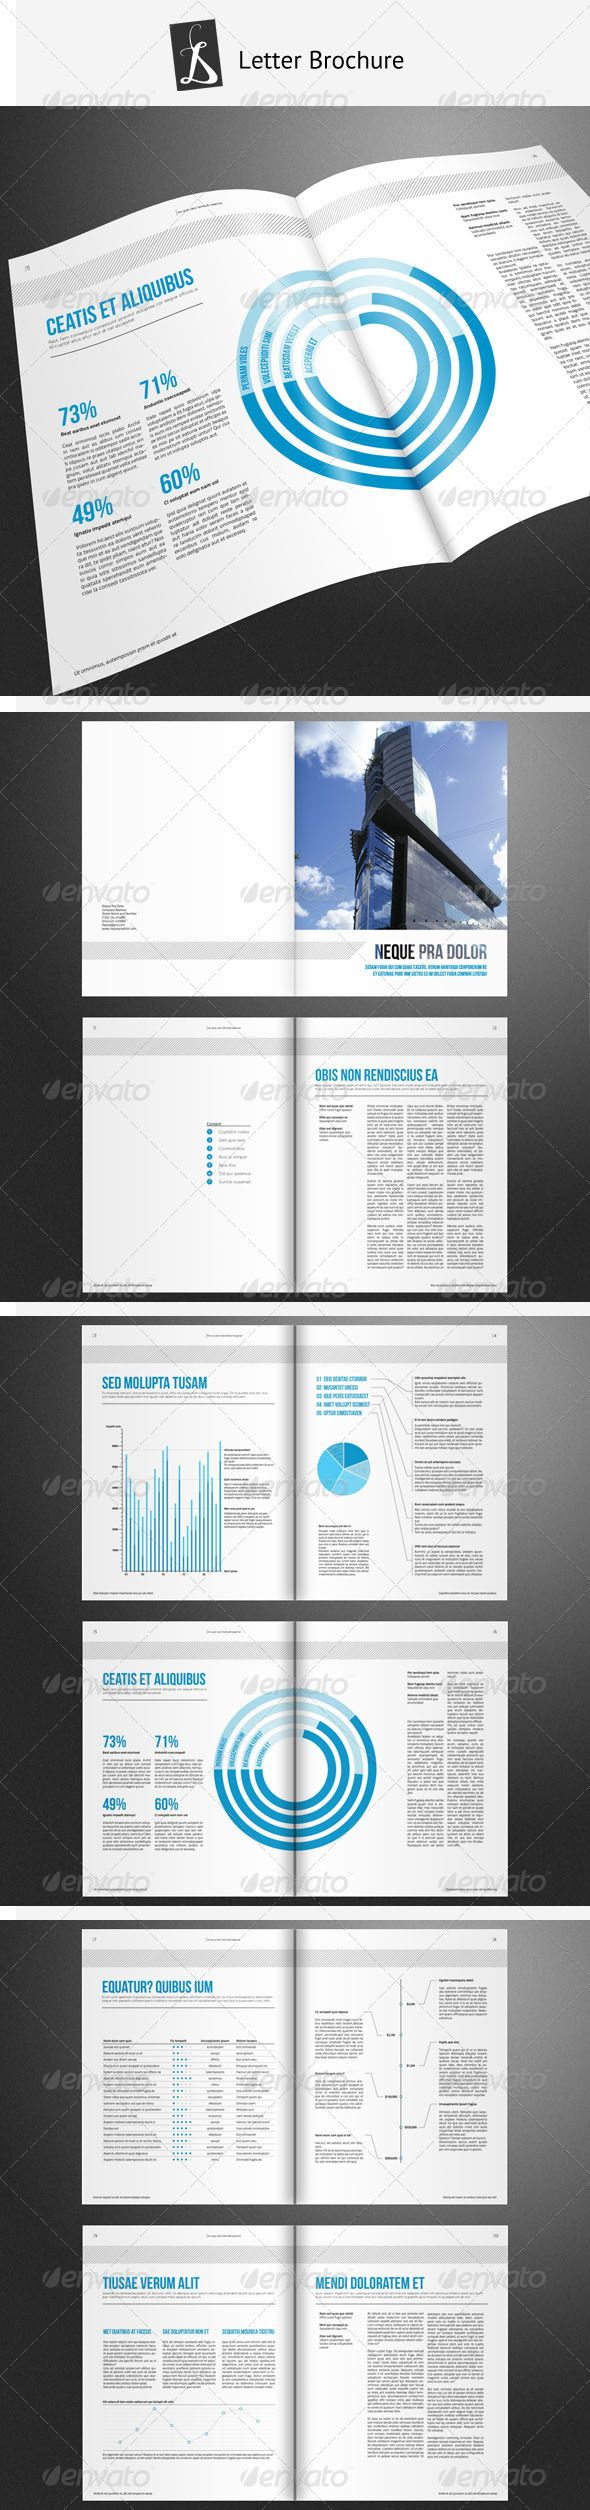 Corporate Brochure 17 - GraphicRiver Item for Sale